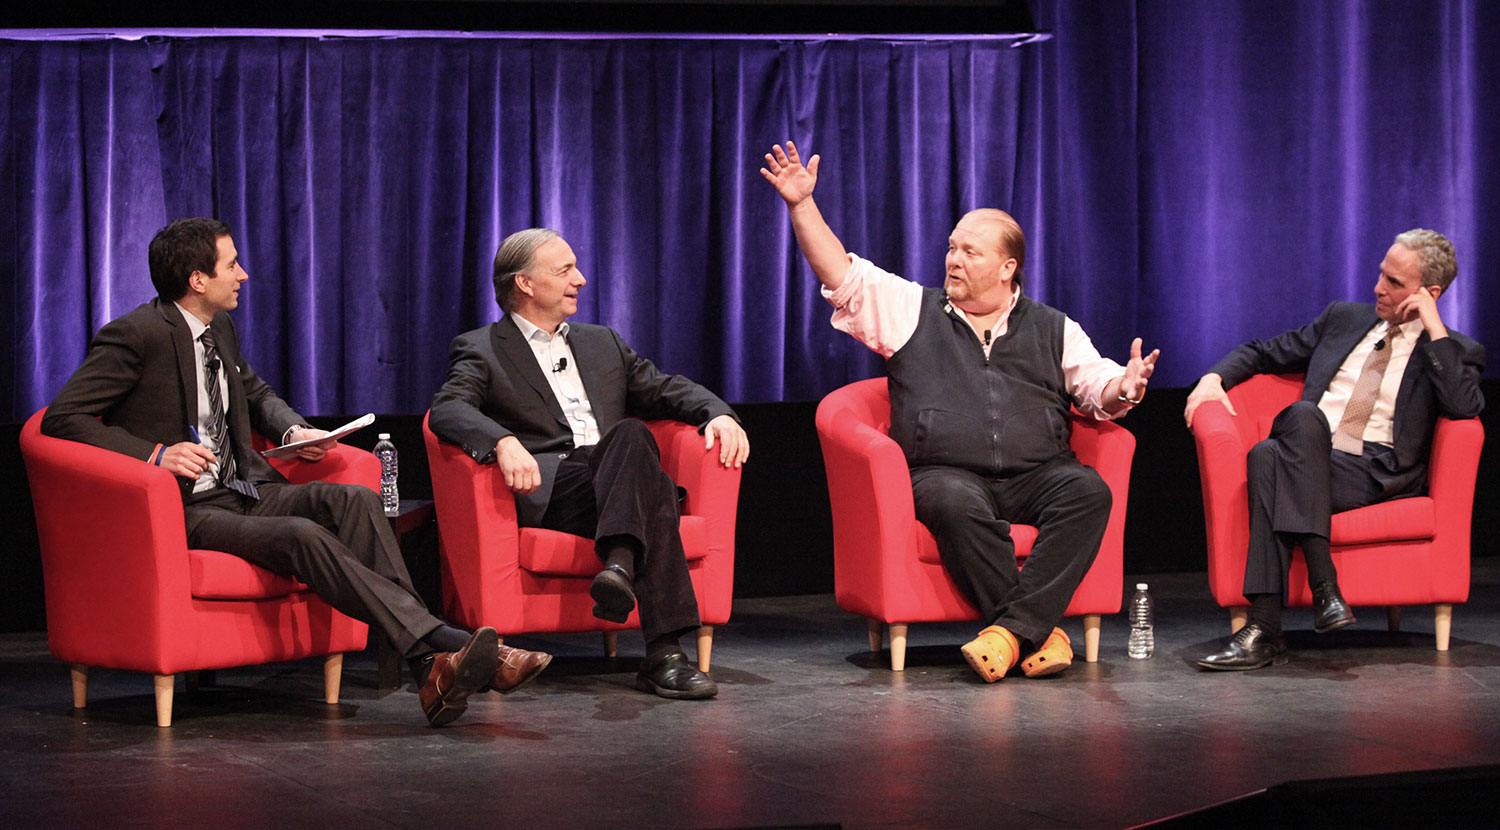 From left: Andrew Ross Sorkin, Ray Dalio, Mario Batali, and Bob Roth